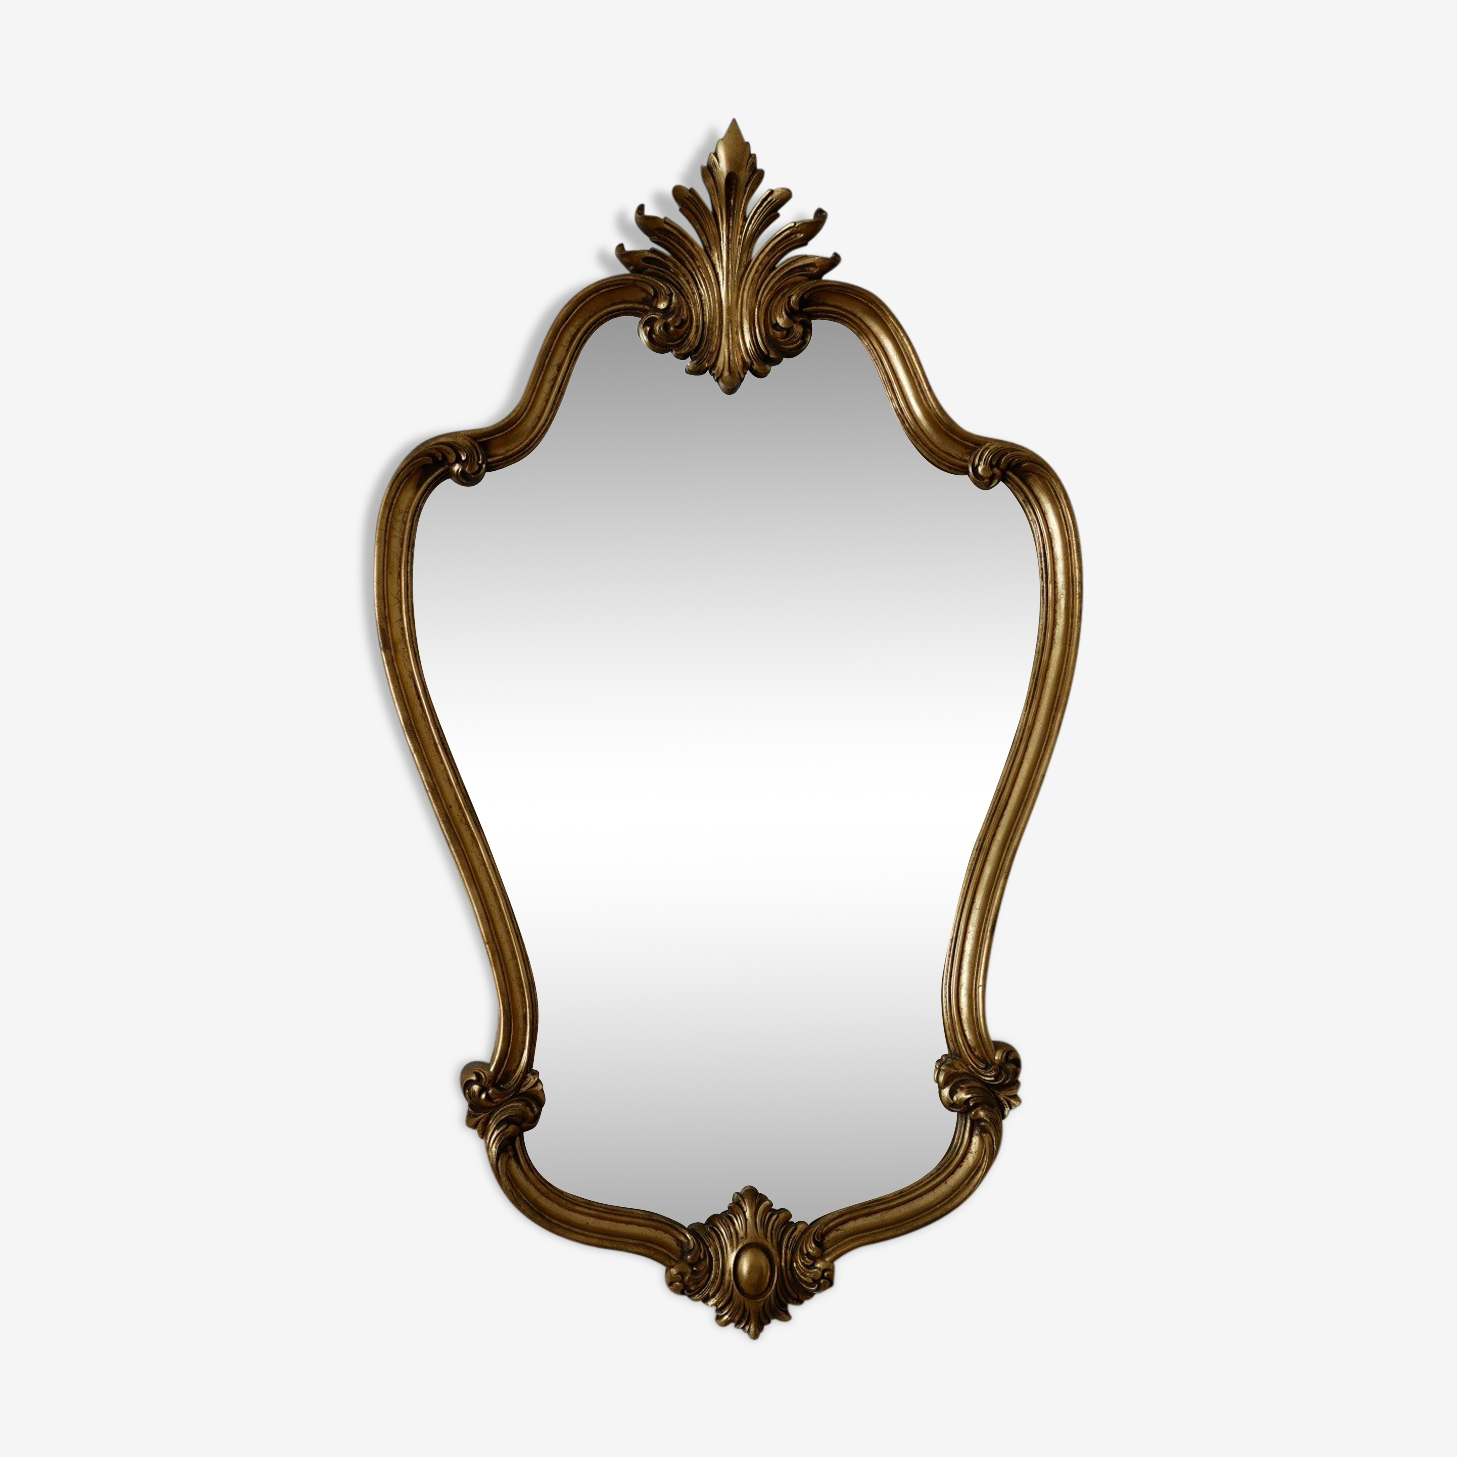 Mirror wooden gold 60s, 70s